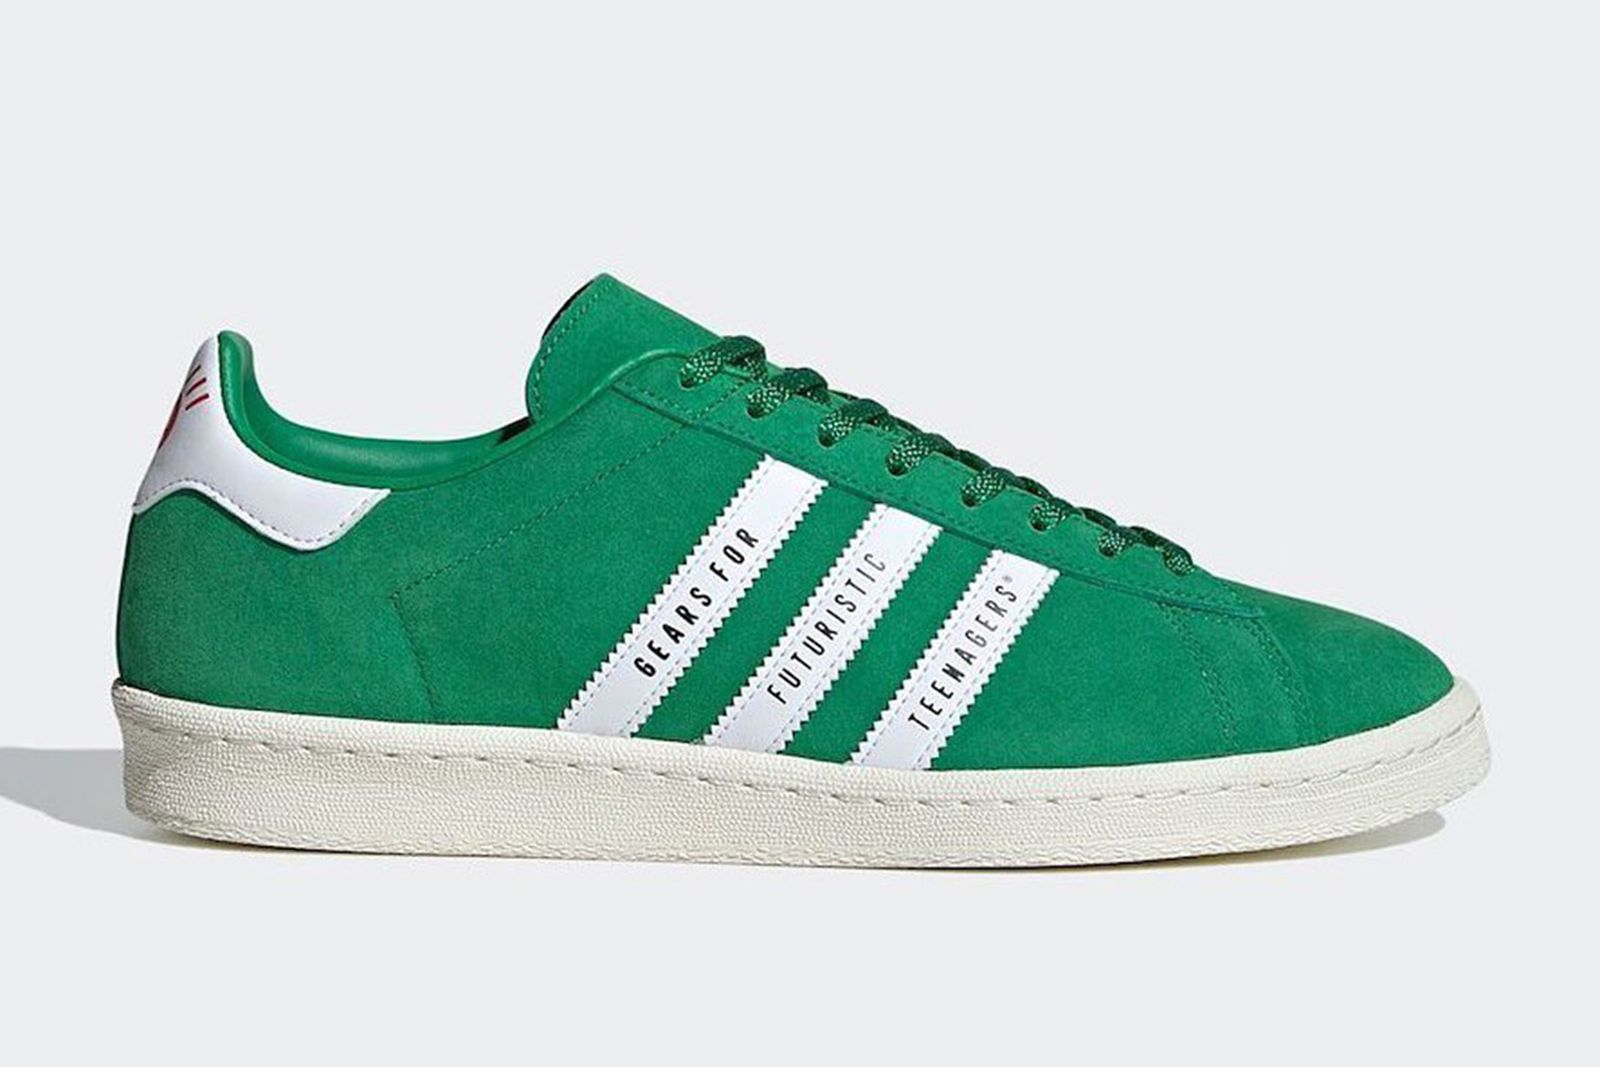 Human Made x adidas Campus in green suede